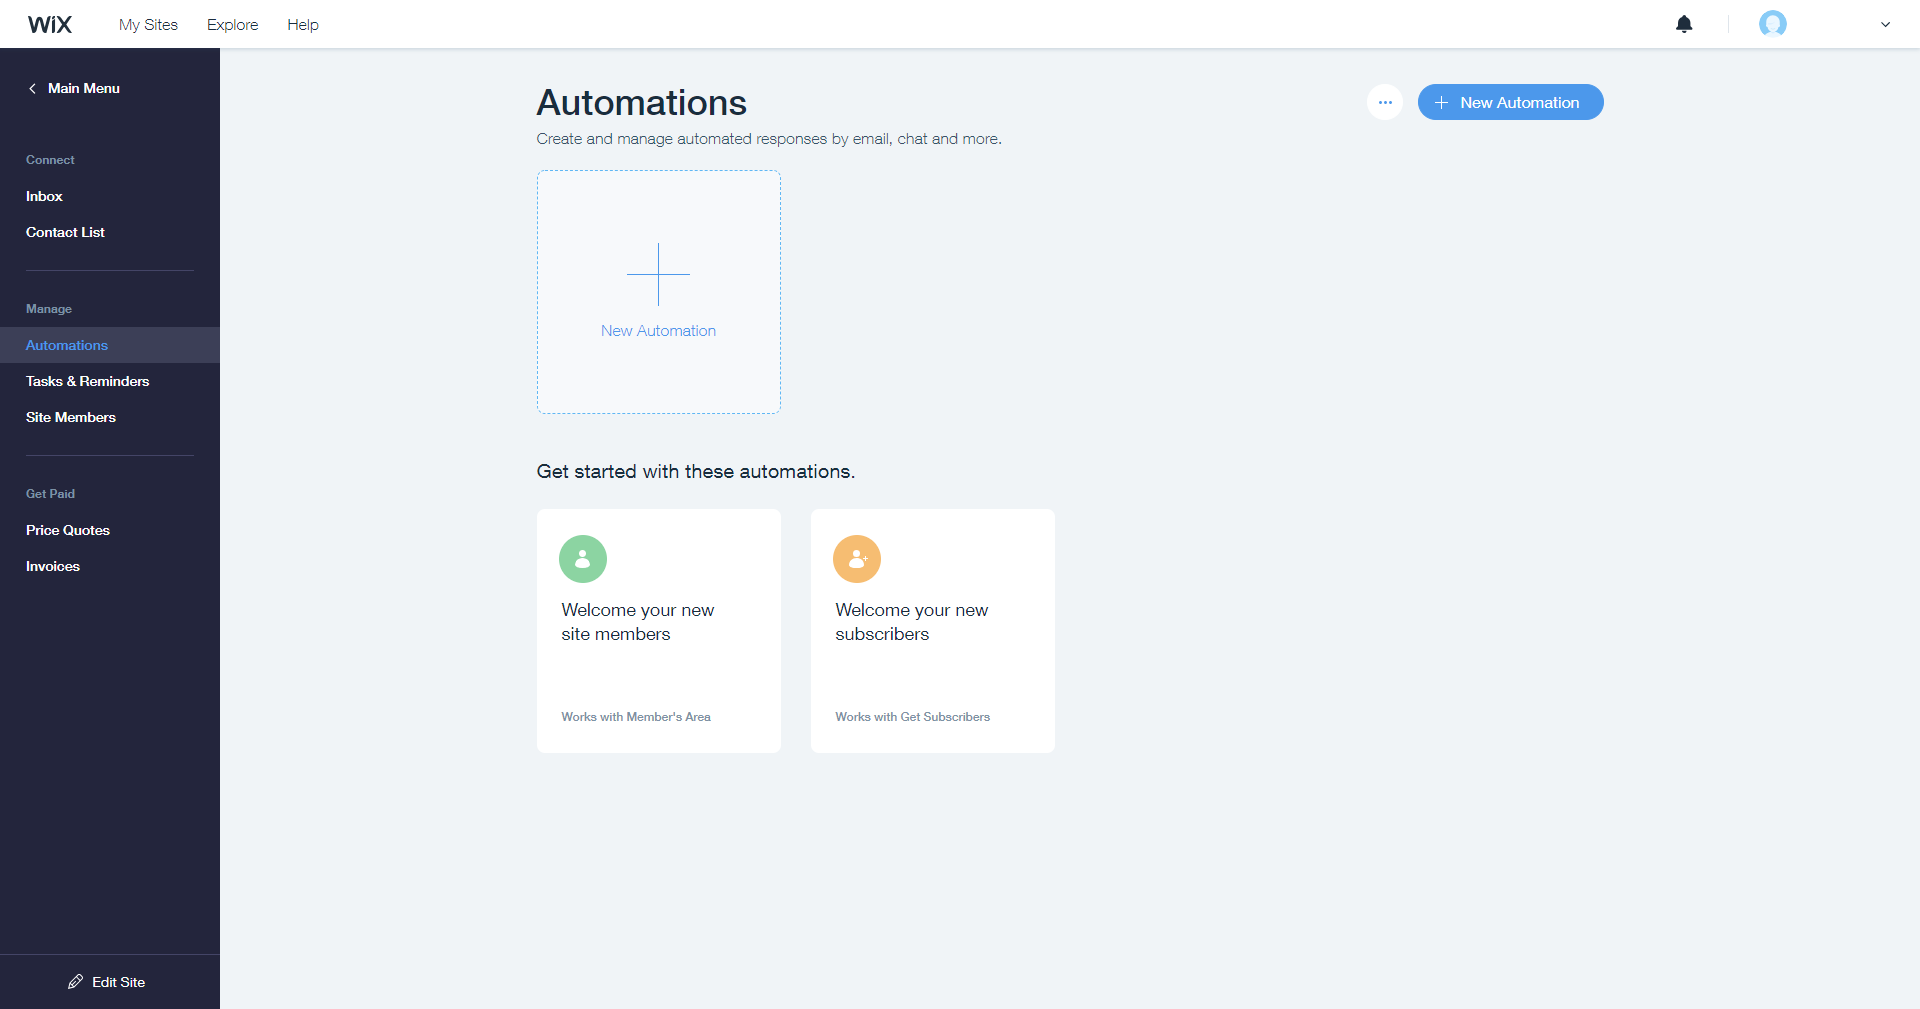 Wix Ascend automations